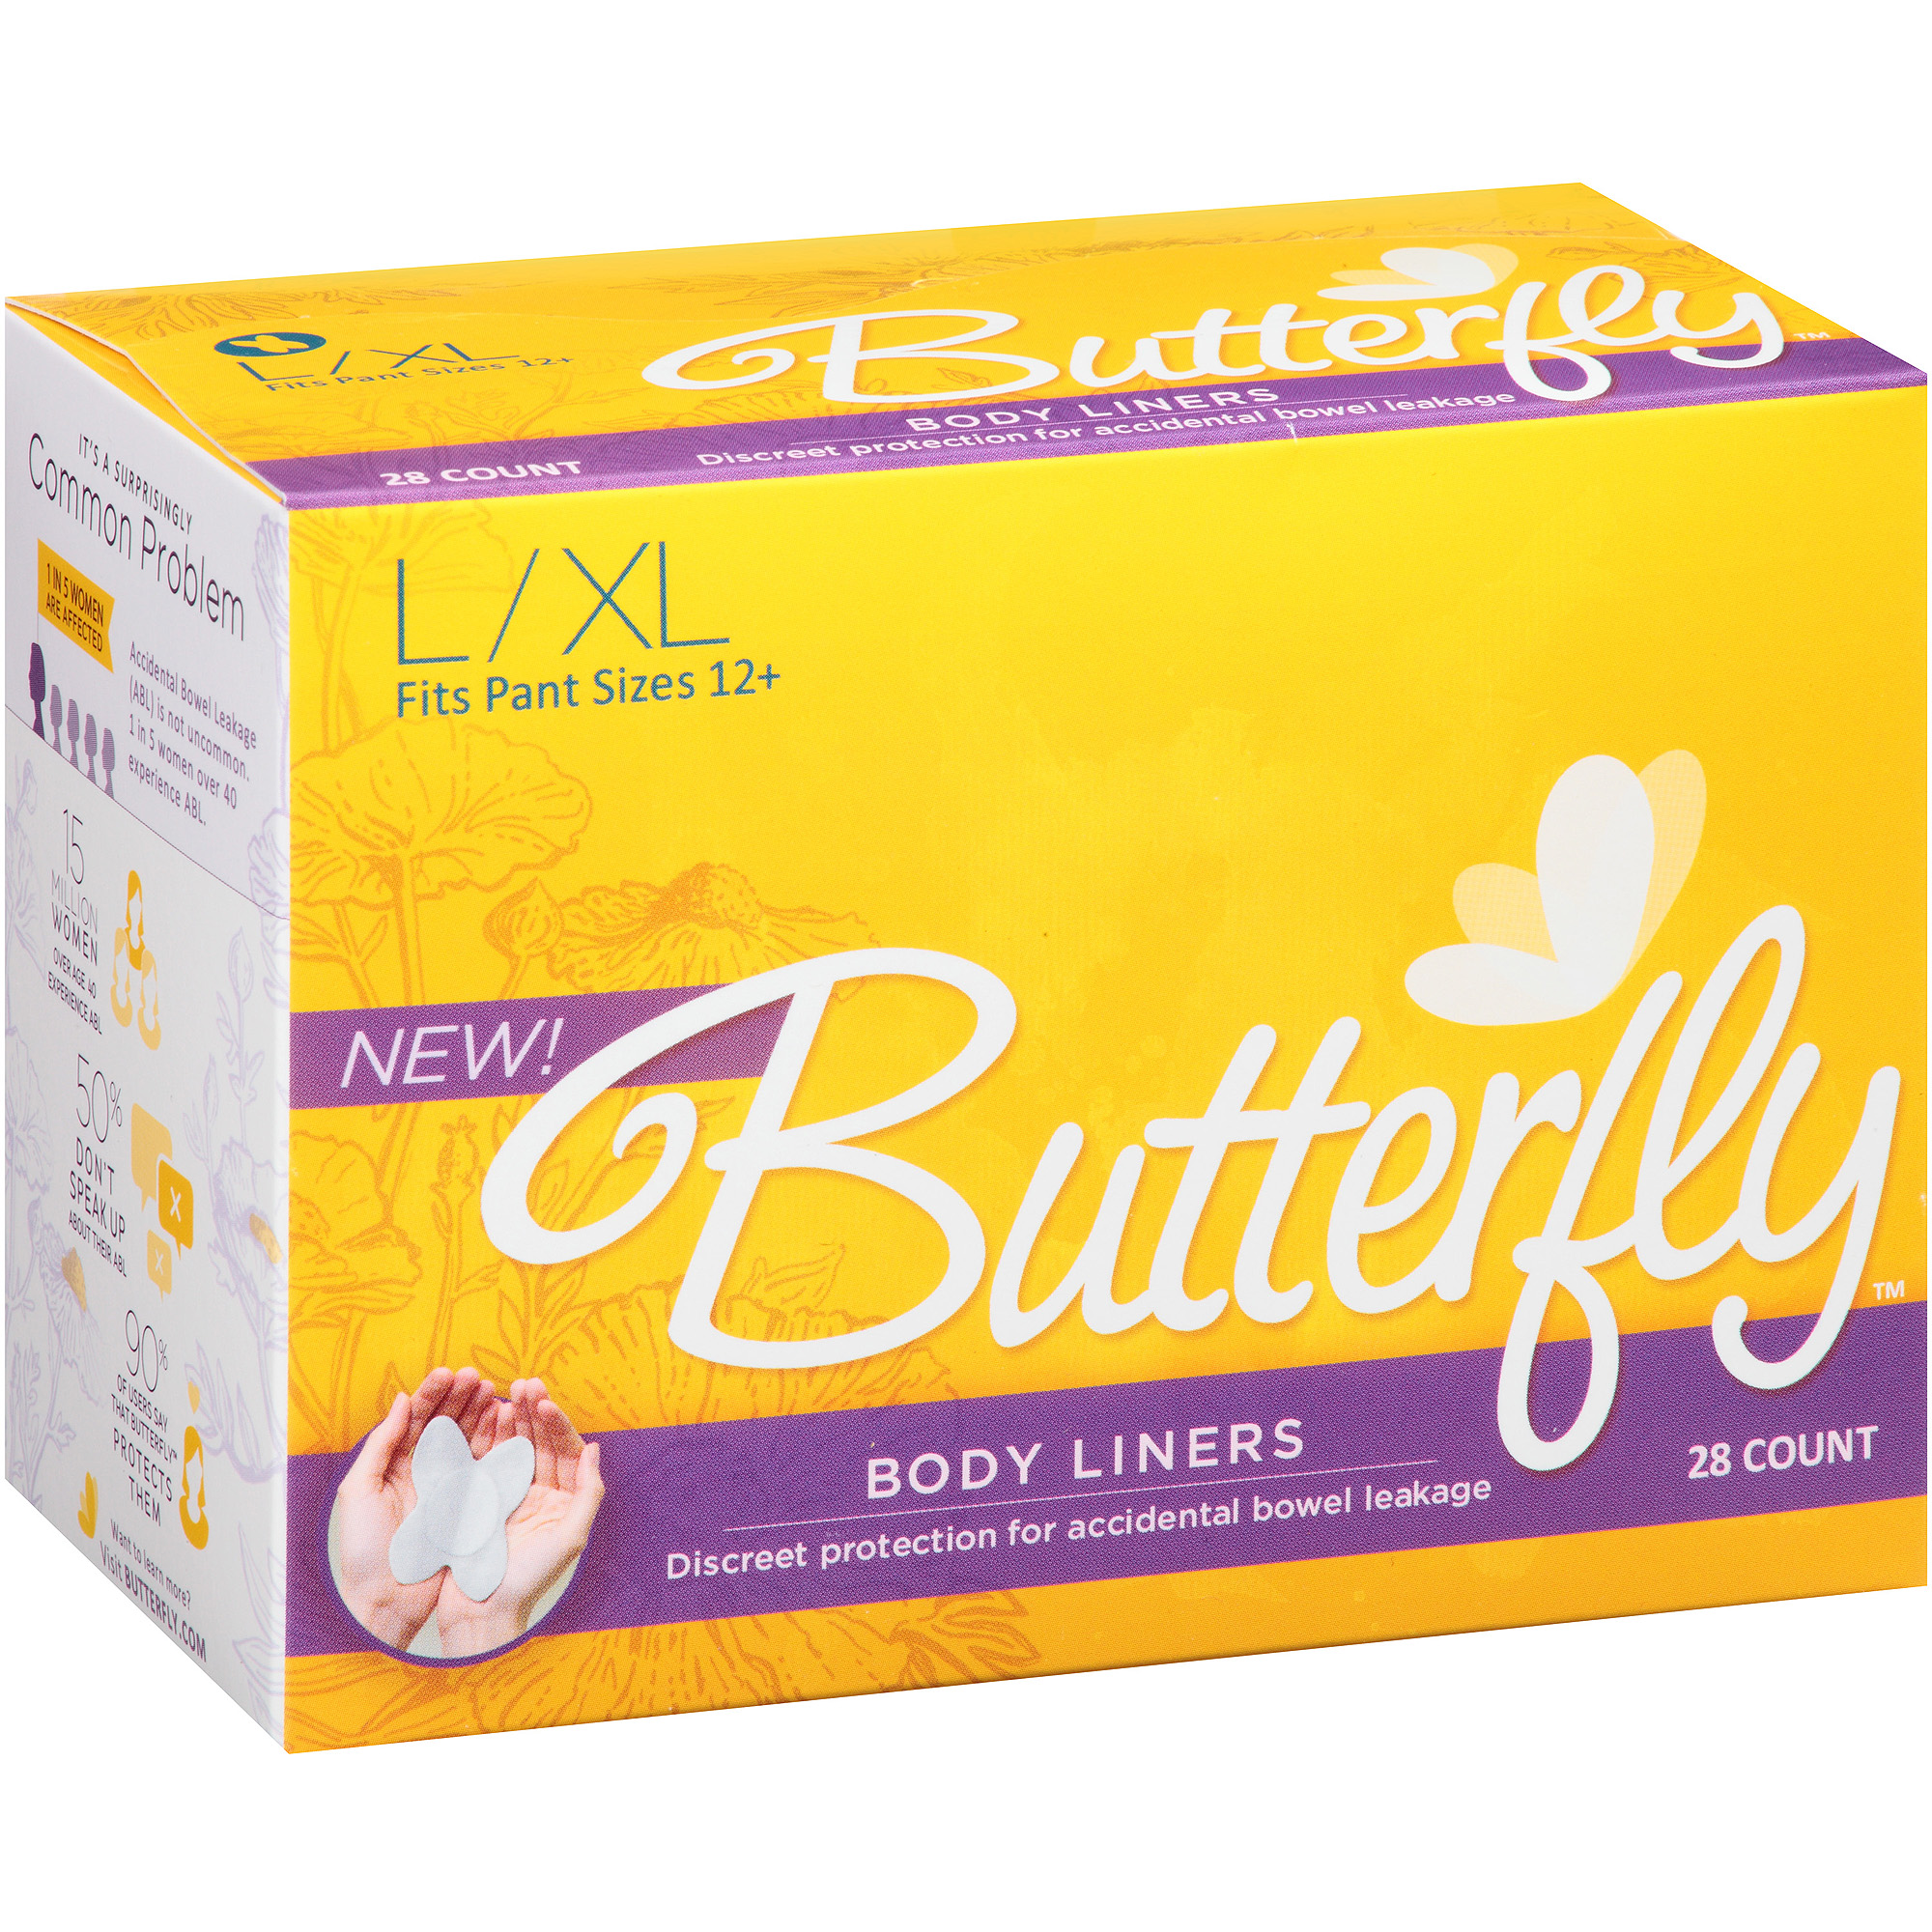 Butterfly Incontinence Care Body Liners for Women, Large/Extra Large (28 liners)